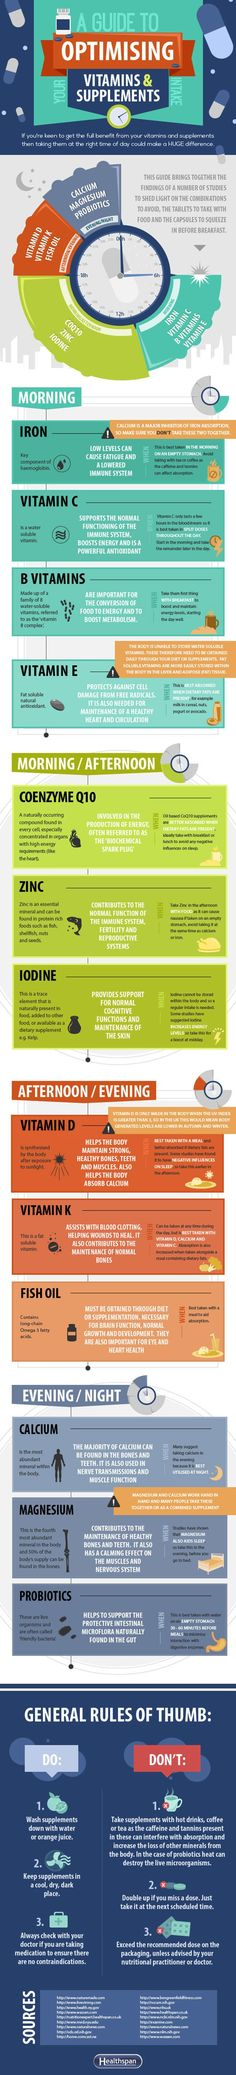 "HEALTHY LIFESTYLE -        ""A Guide To Optimising Your Vitamins And Supplements Infographic."""